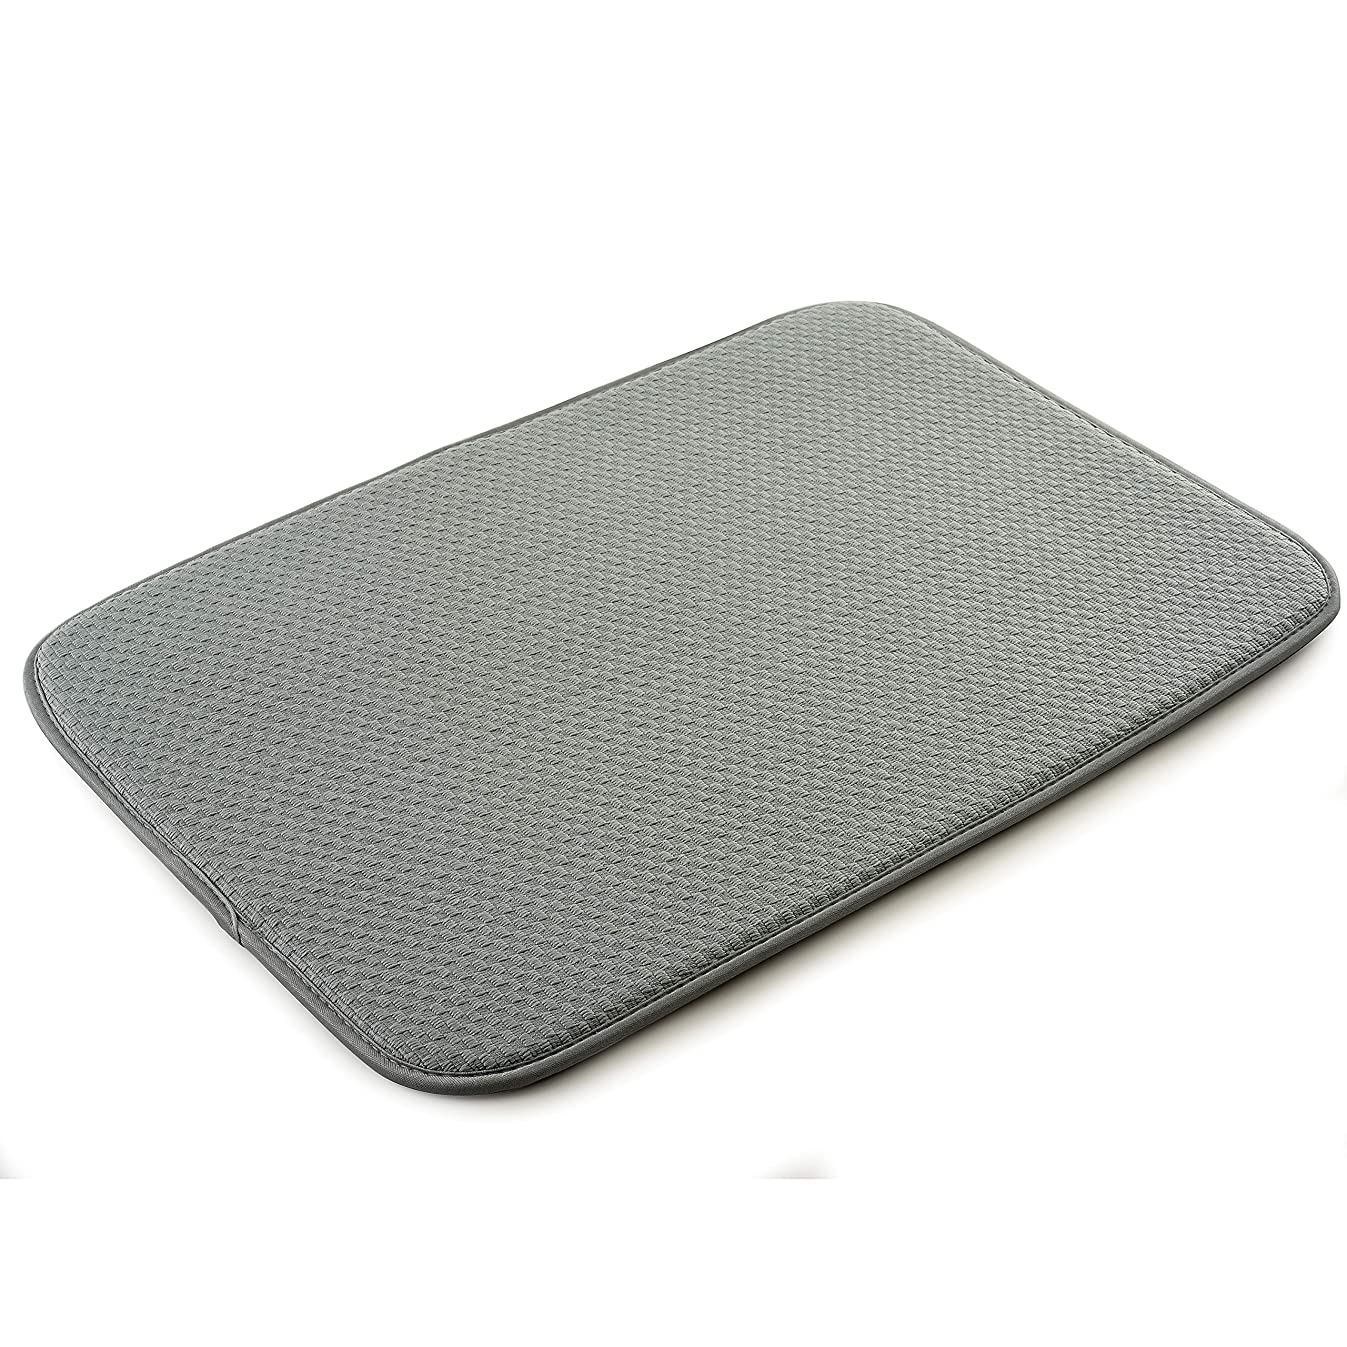 Norpro 18 by 12-Inch Microfiber Dish Drying Mat, Gray